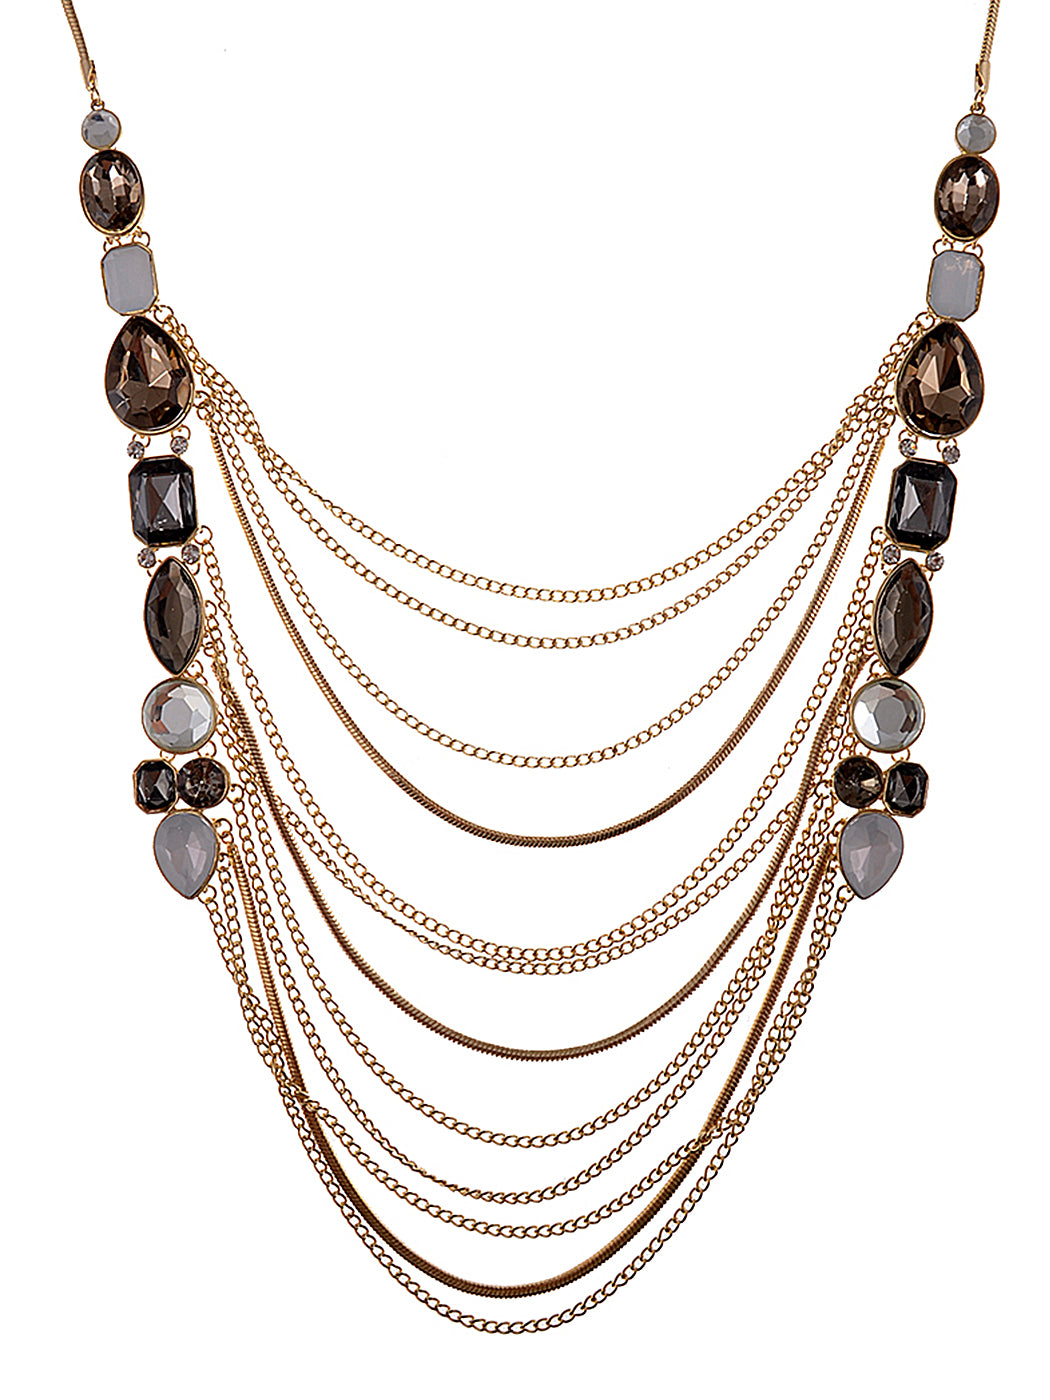 Cascade Layer Necklace Smoke Trend Necklace